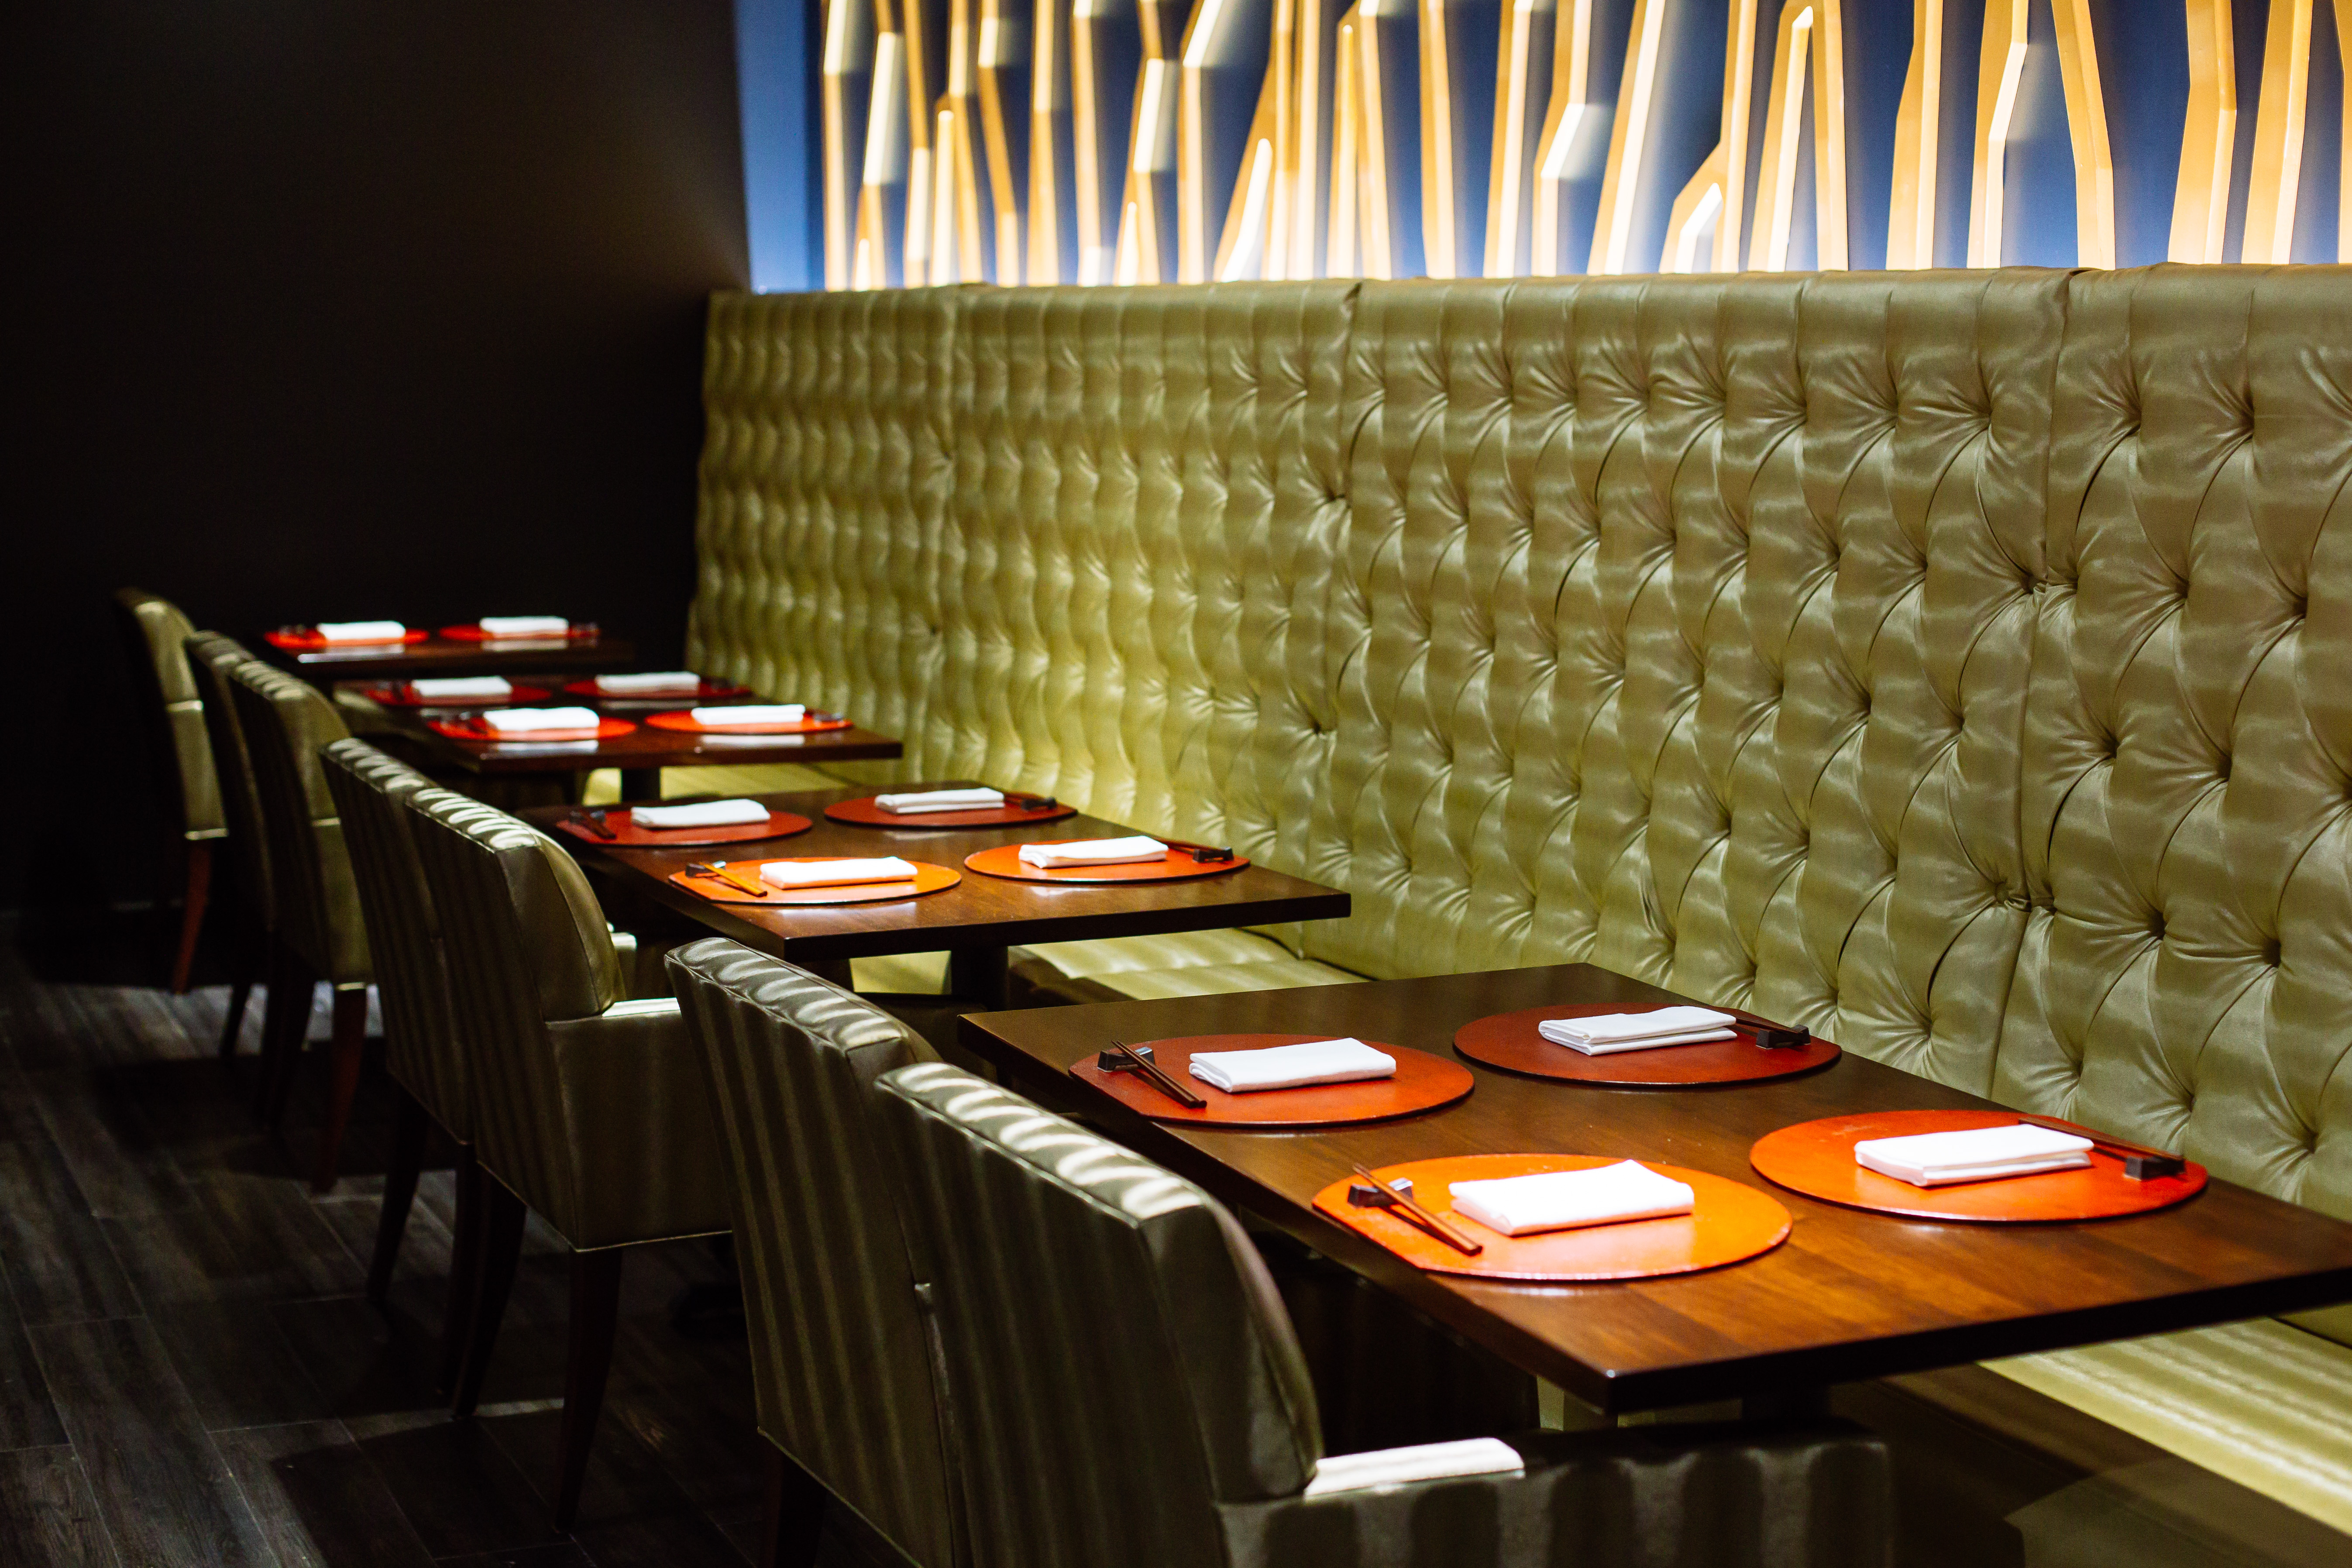 sushi zen gives way to suzuki, a japanese triple in midtown - eater ny